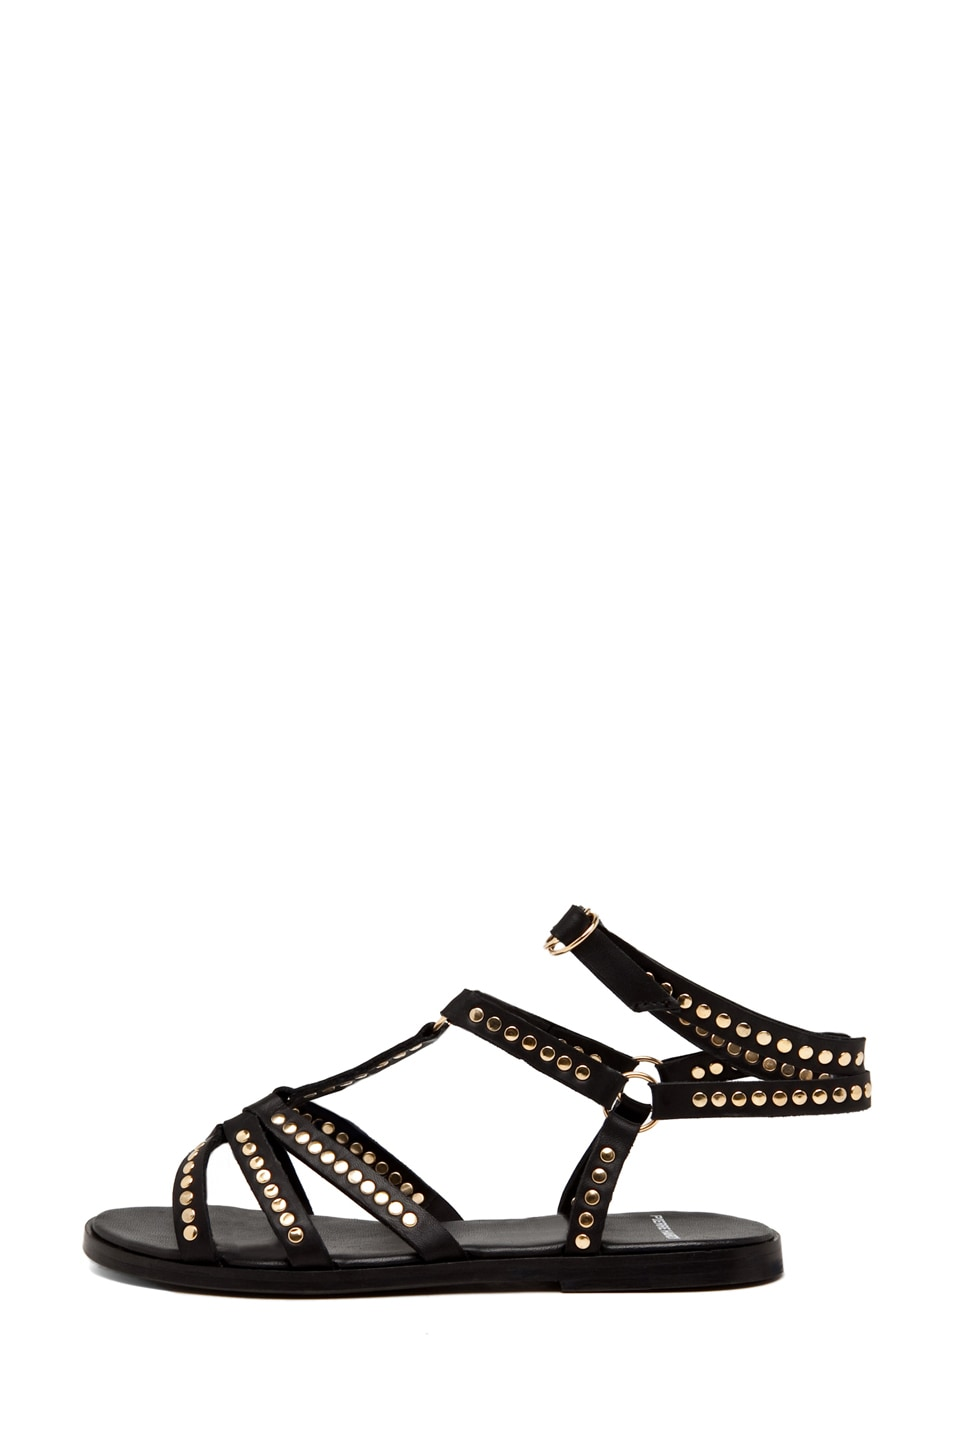 Image 2 of Pierre Hardy Leather Studded Sandal/Gold in Black